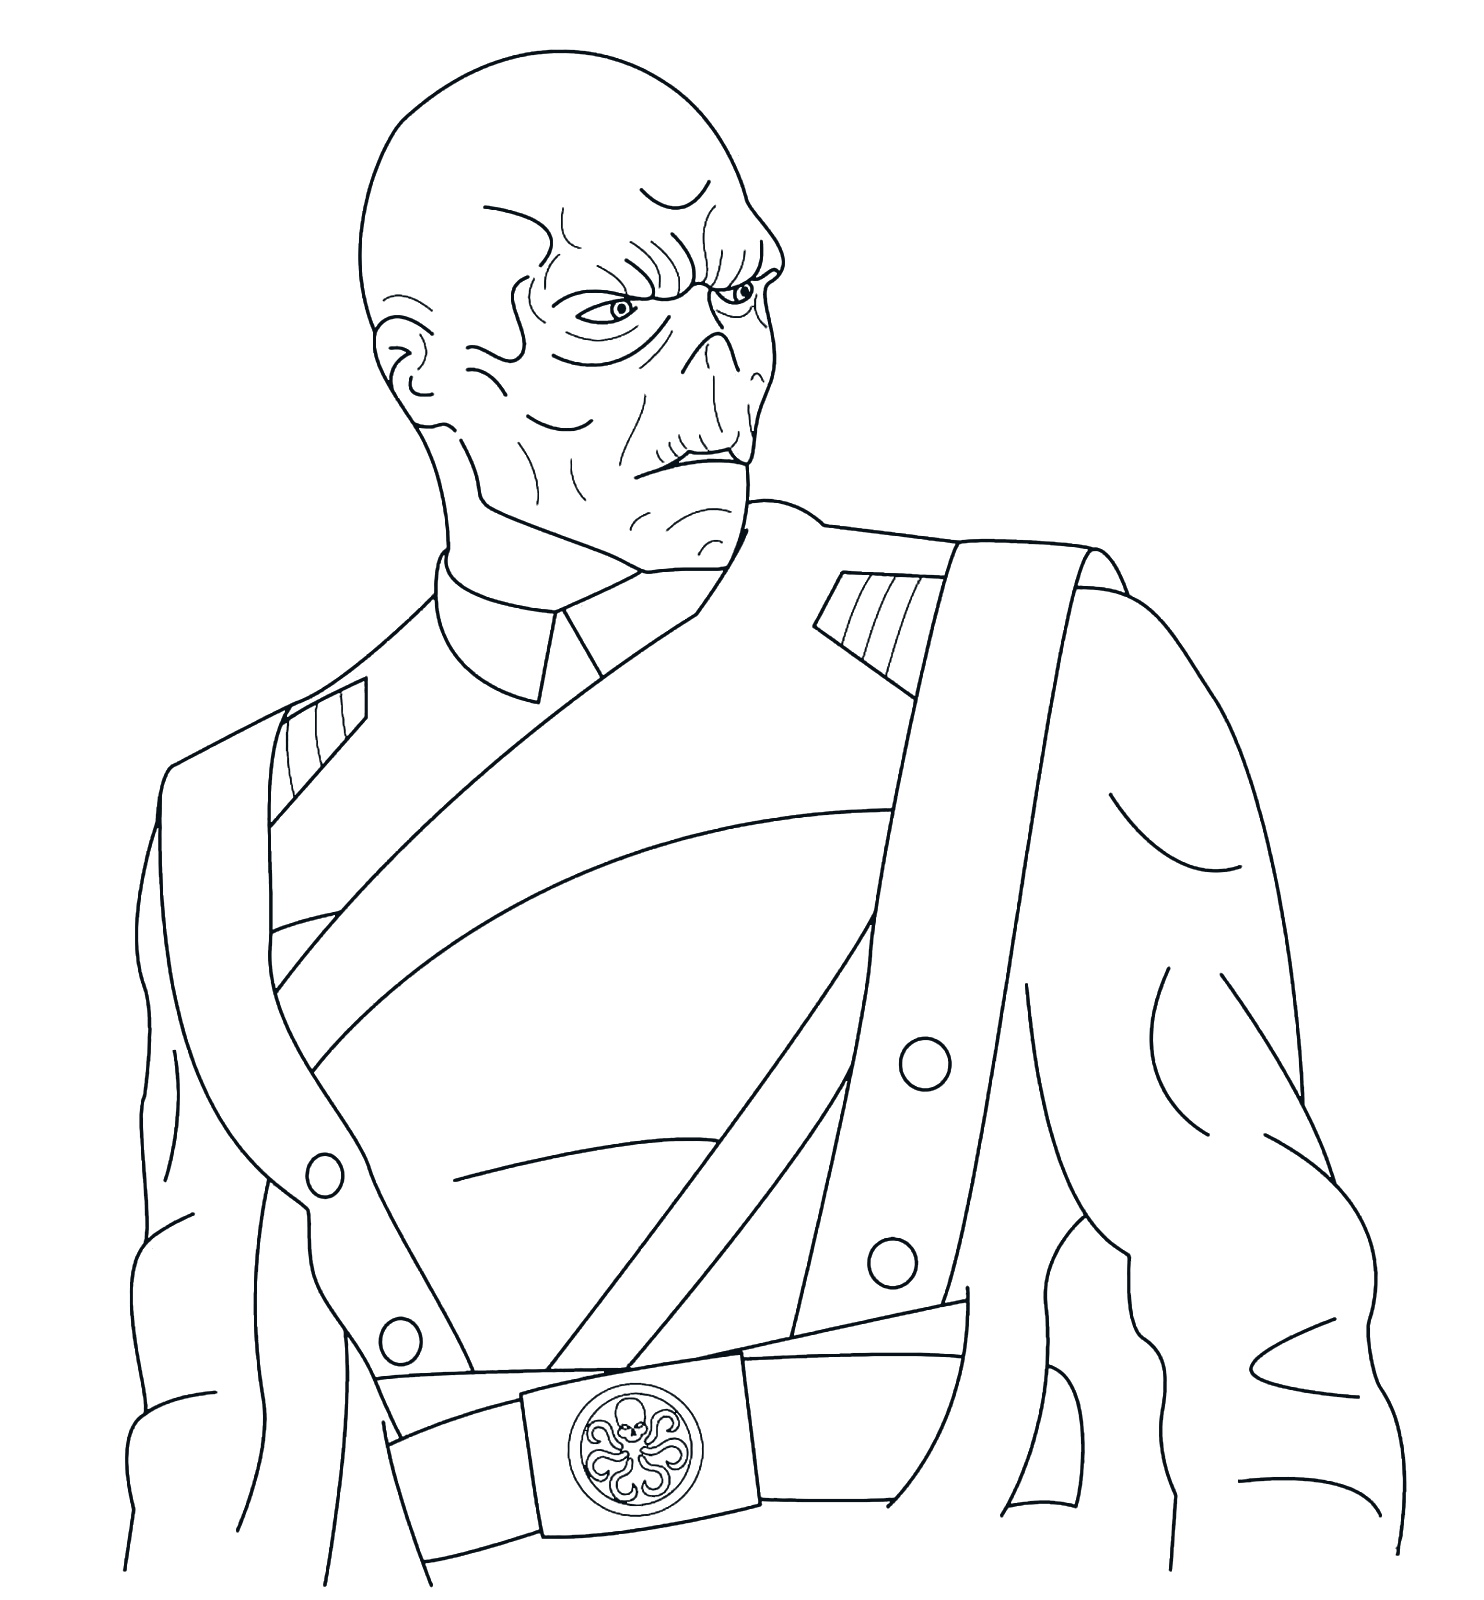 Captain America Red Skull Bitter Enemy Coloring Pages The First Avenger  Ross Marquand Avengers Endgame Soul Stone Infinity War In — oguchionyewu